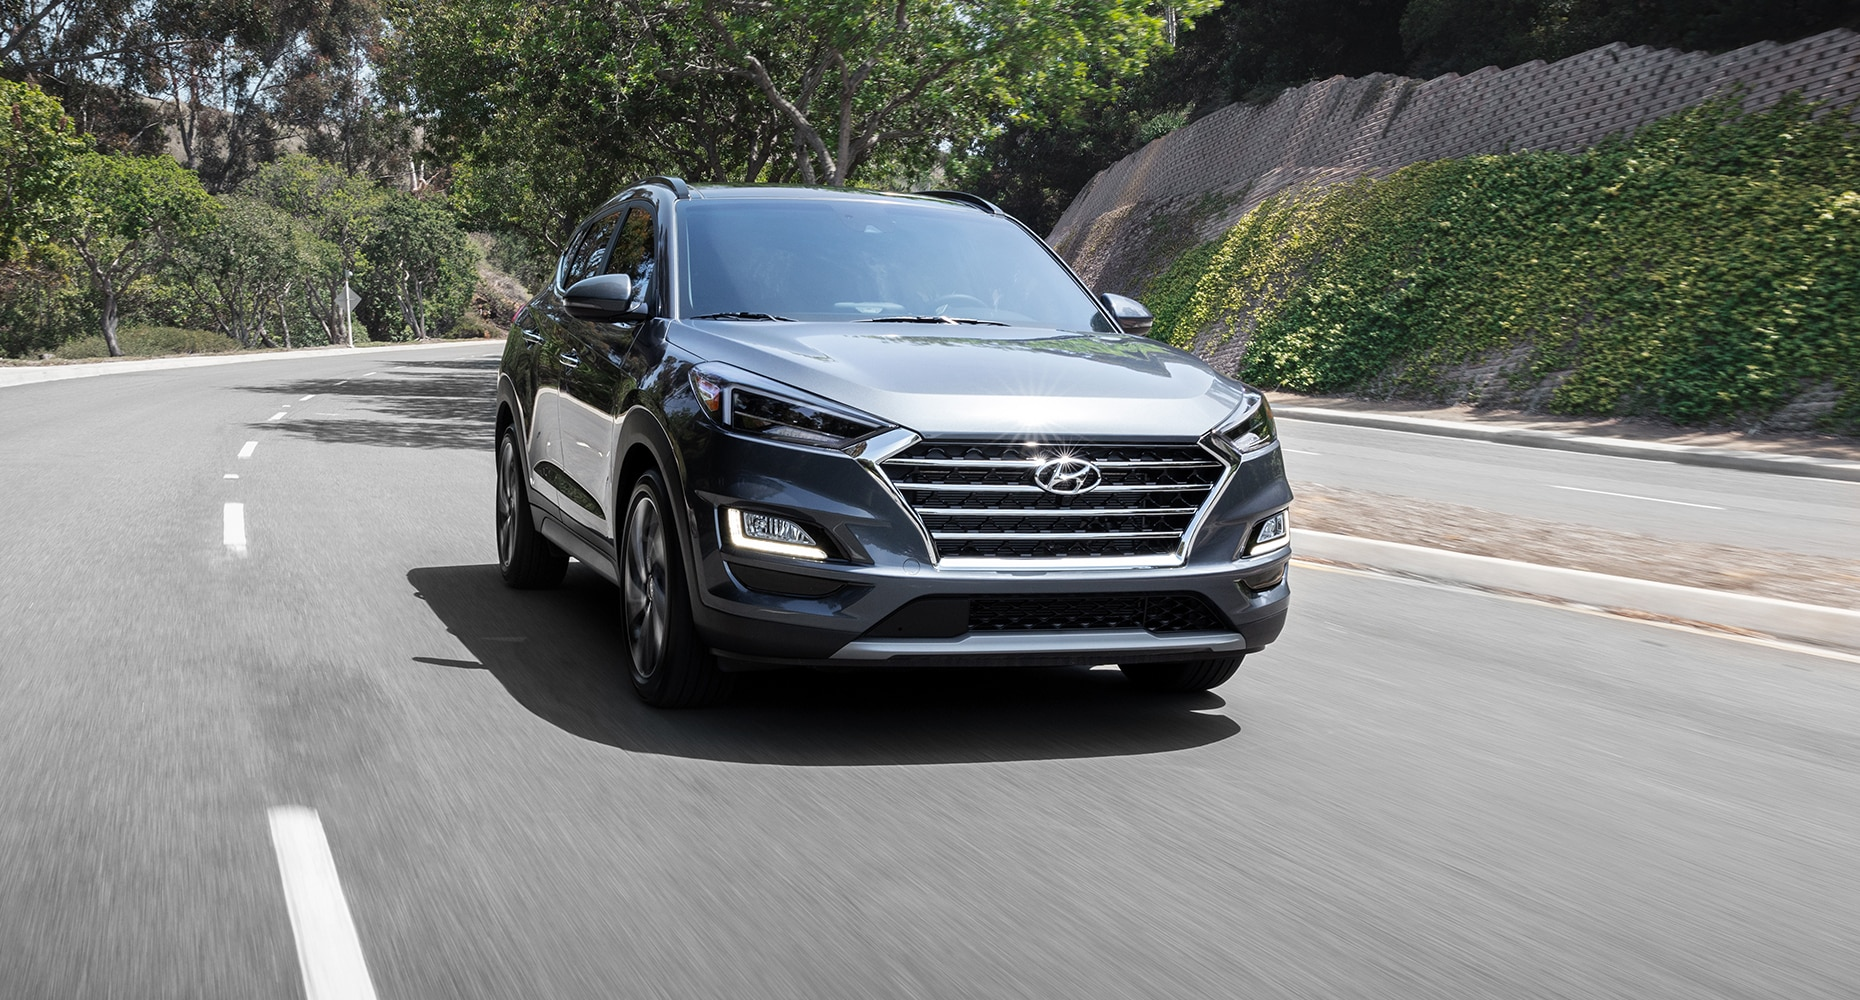 Front grille of the 2020 Tucson.